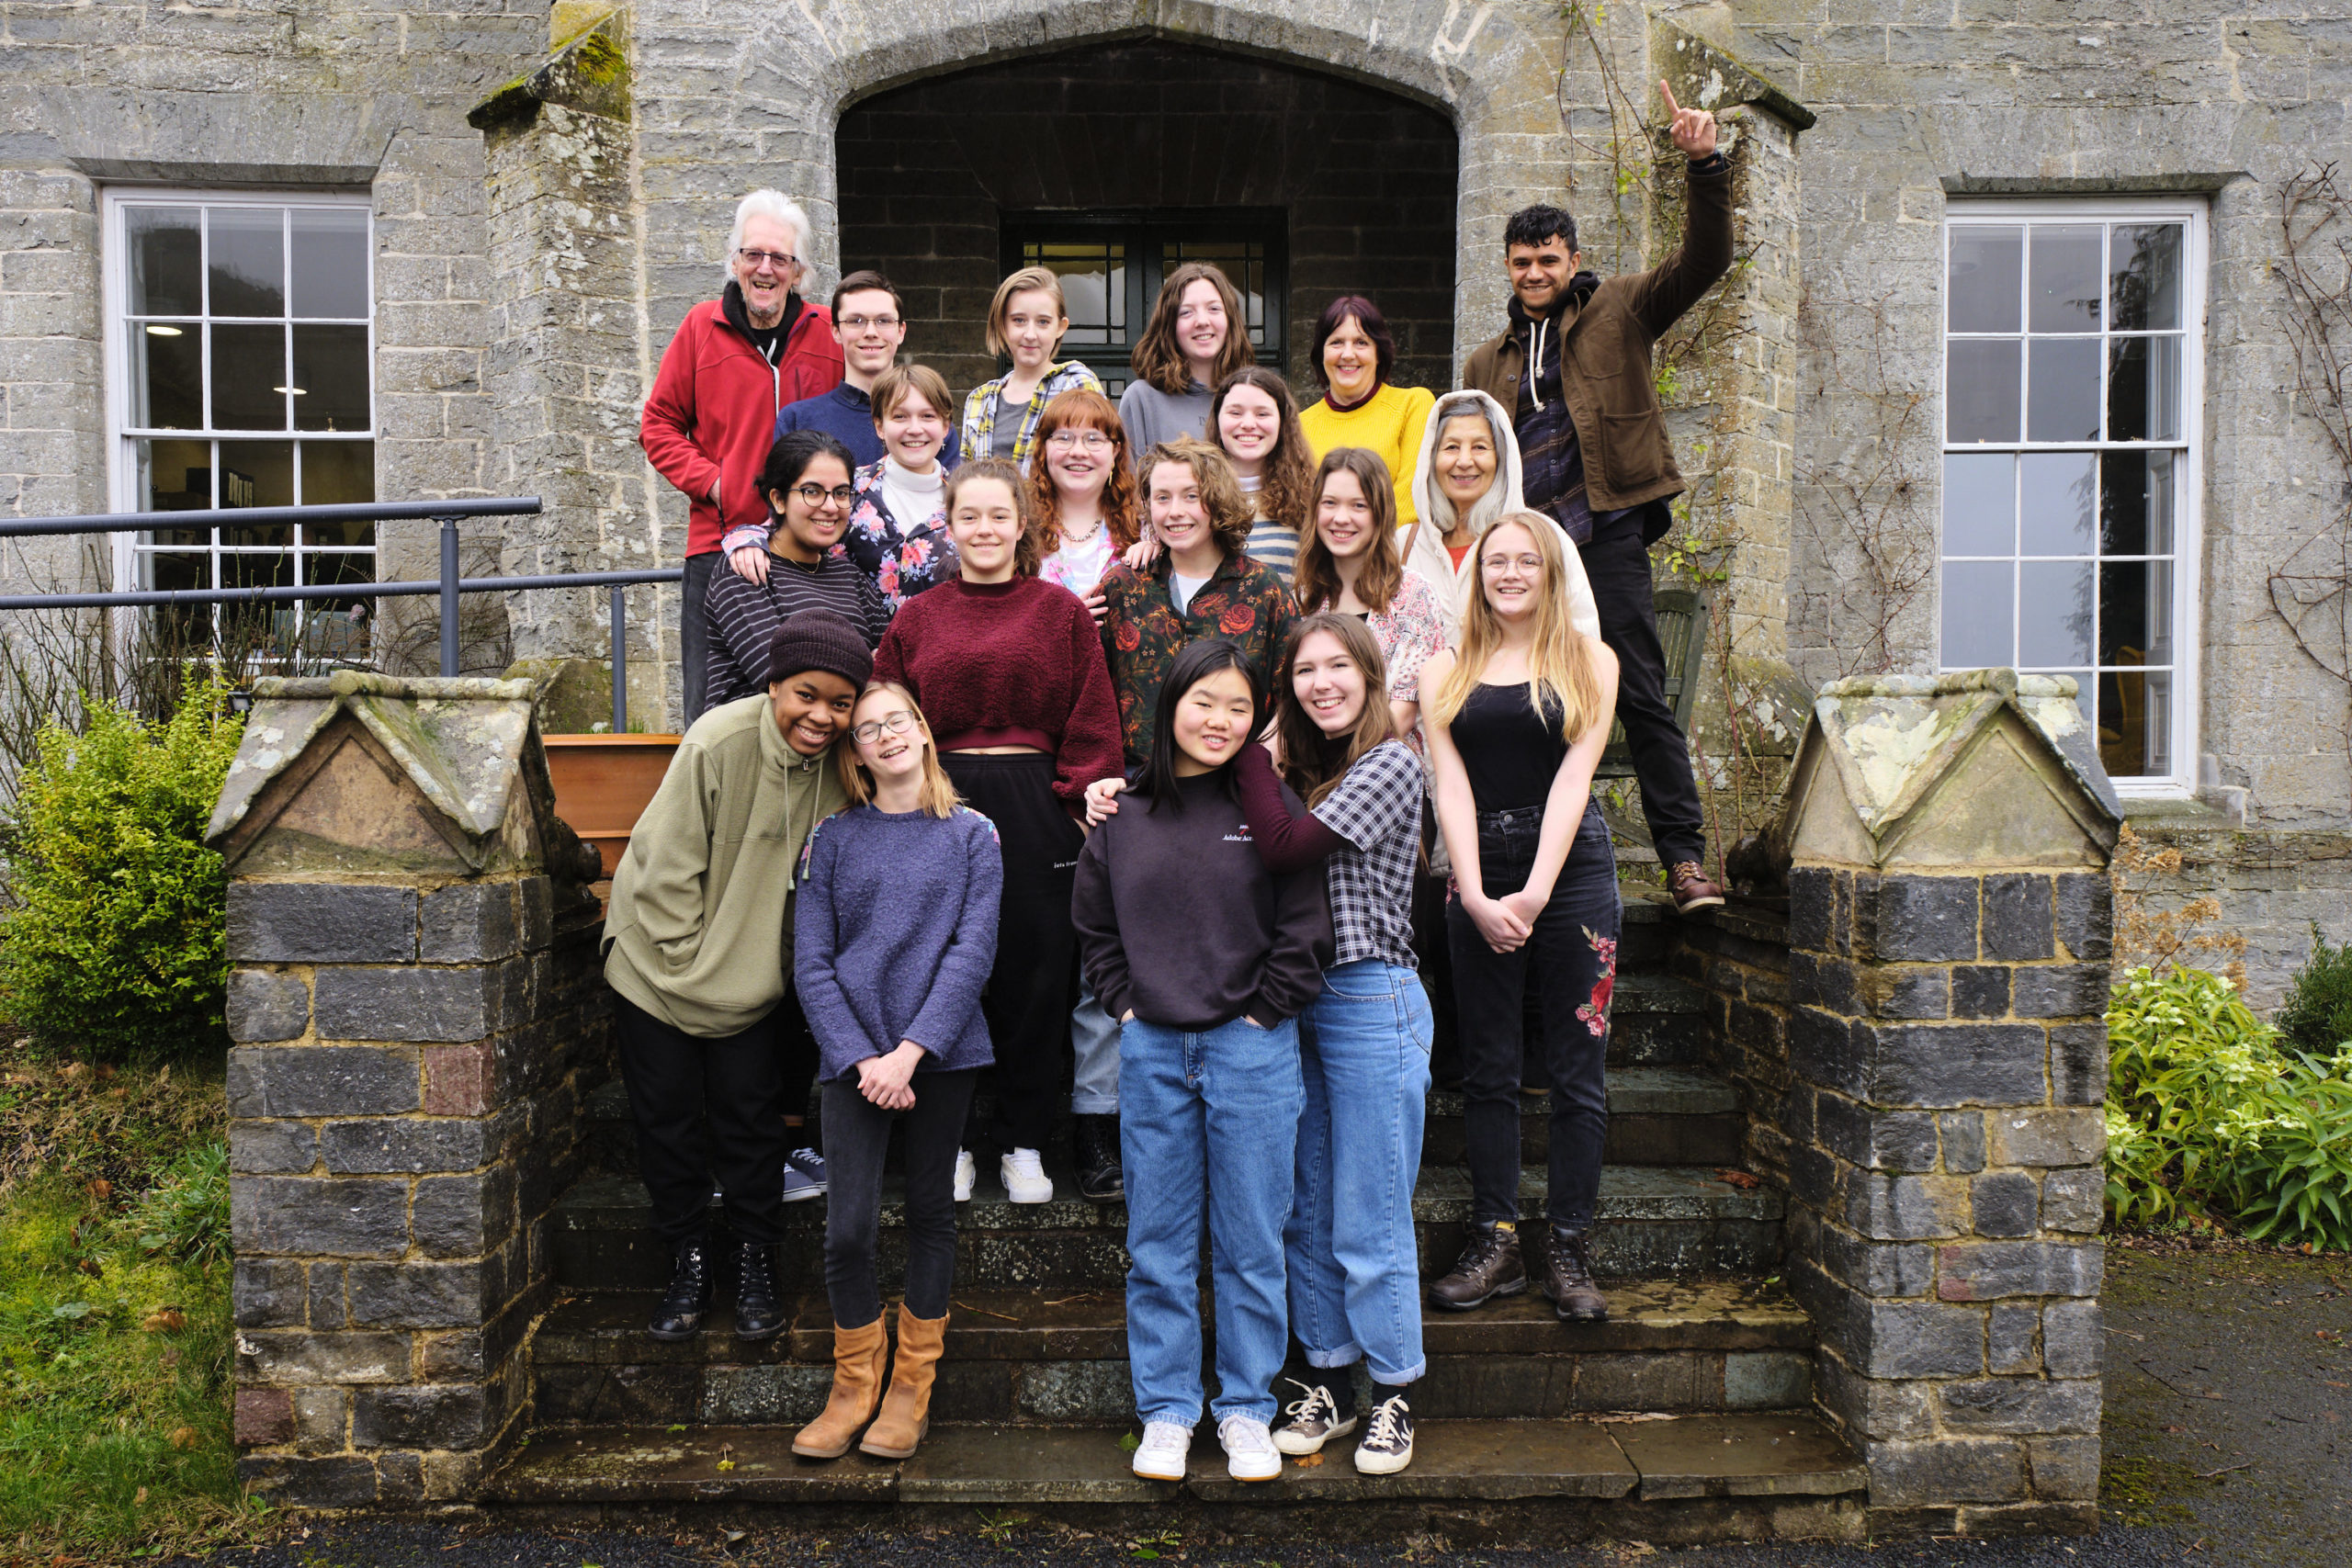 Photo of the 15 Foyle Young Poets standing on steps at Arvon, with poet tutors Raymond Antrobus and Mimi Khalvati, and in loco parentes Fran Pridham and Colin Watts